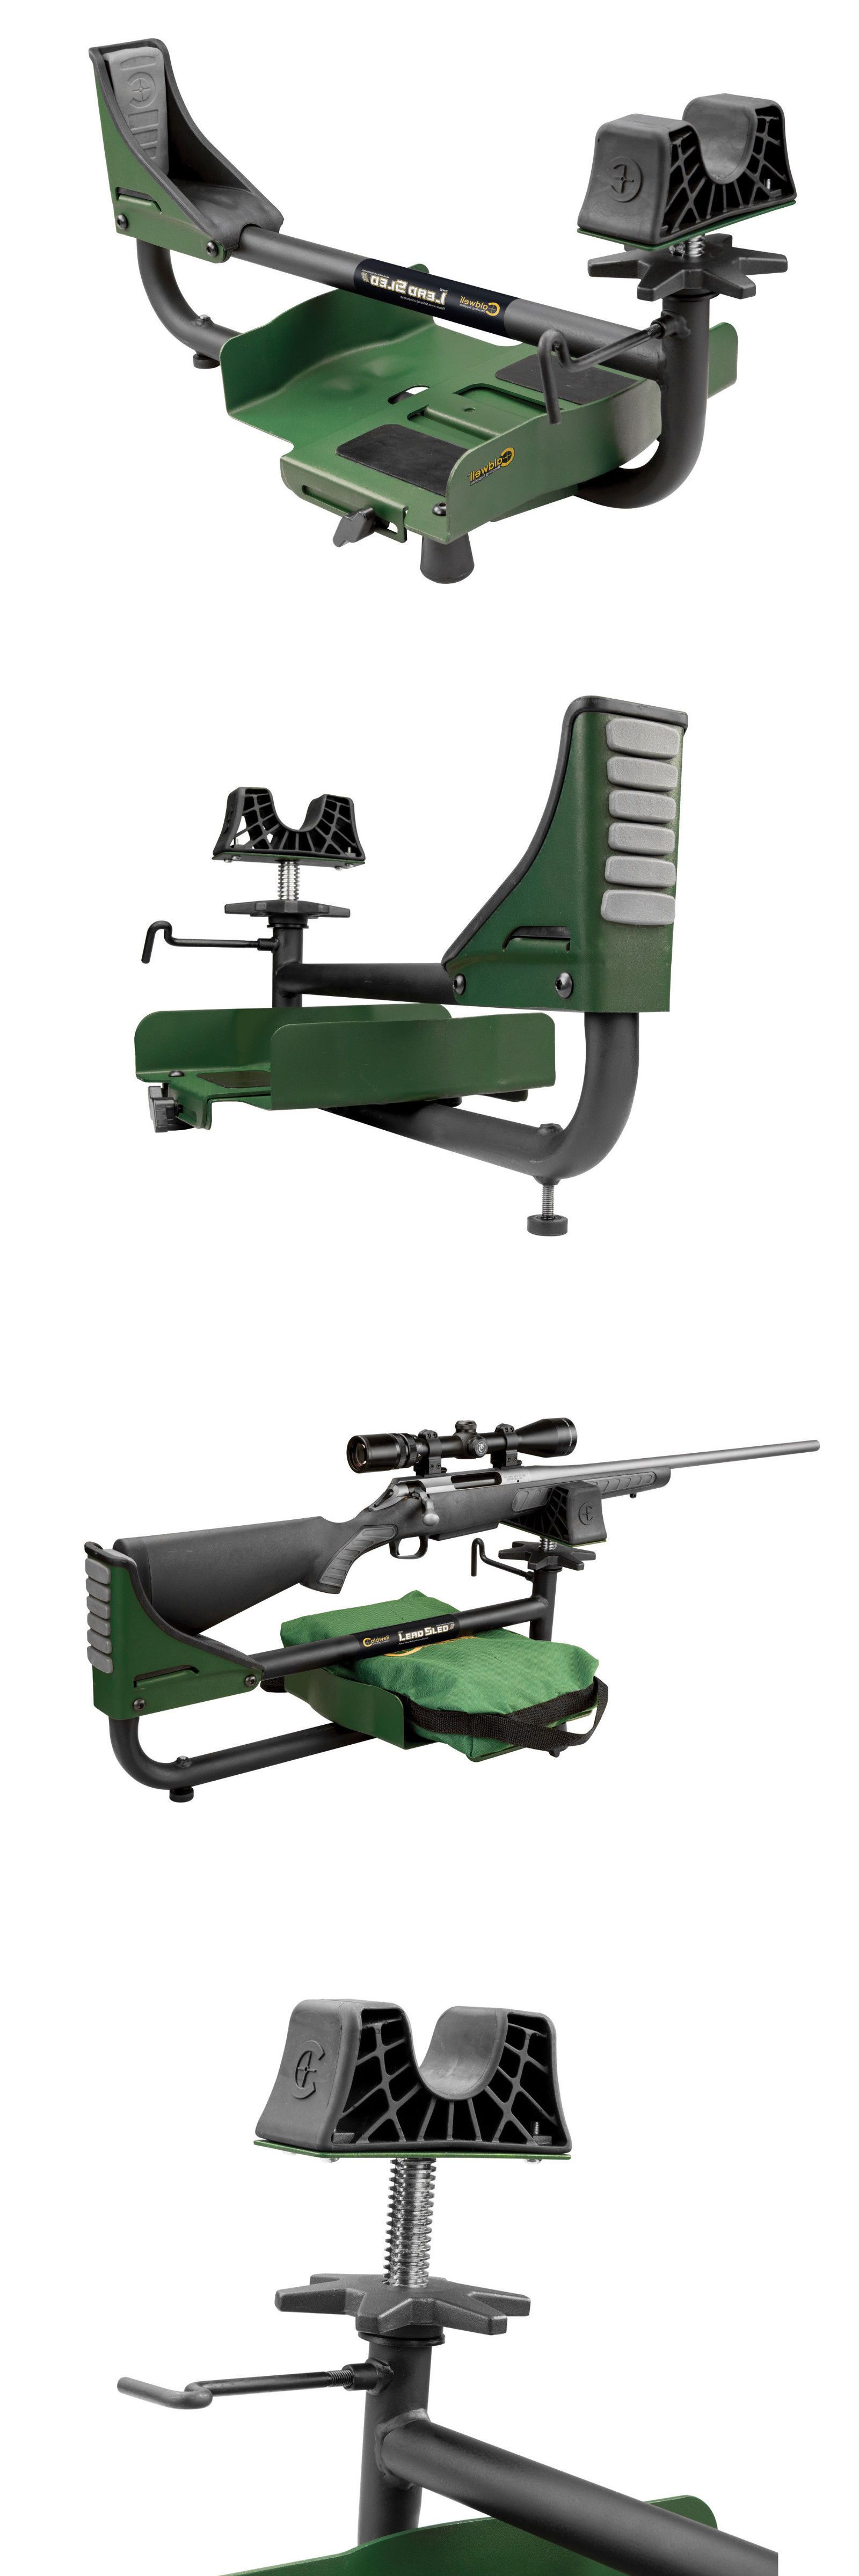 Caldwell Lead Sled 3 Adjustable Recoil Reducing Rifle Shooting Rest 820310